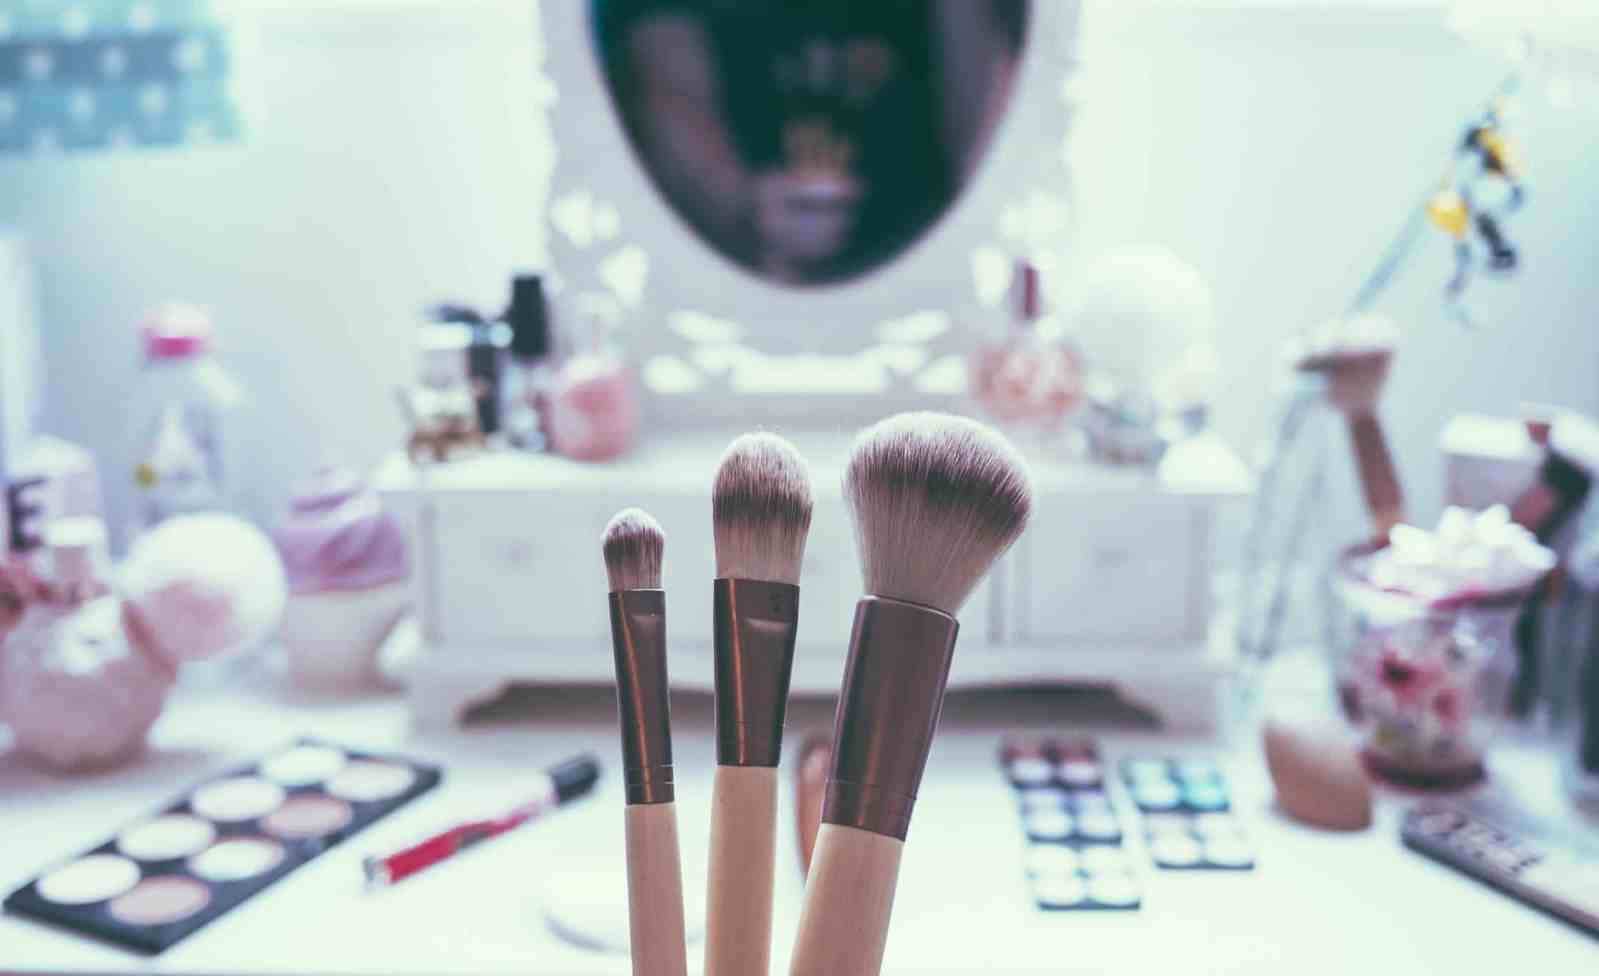 Who are the newest trendsetters in the beauty world? Male makeup artists, of course. Take a look at these top male makeup artists who we love right now.